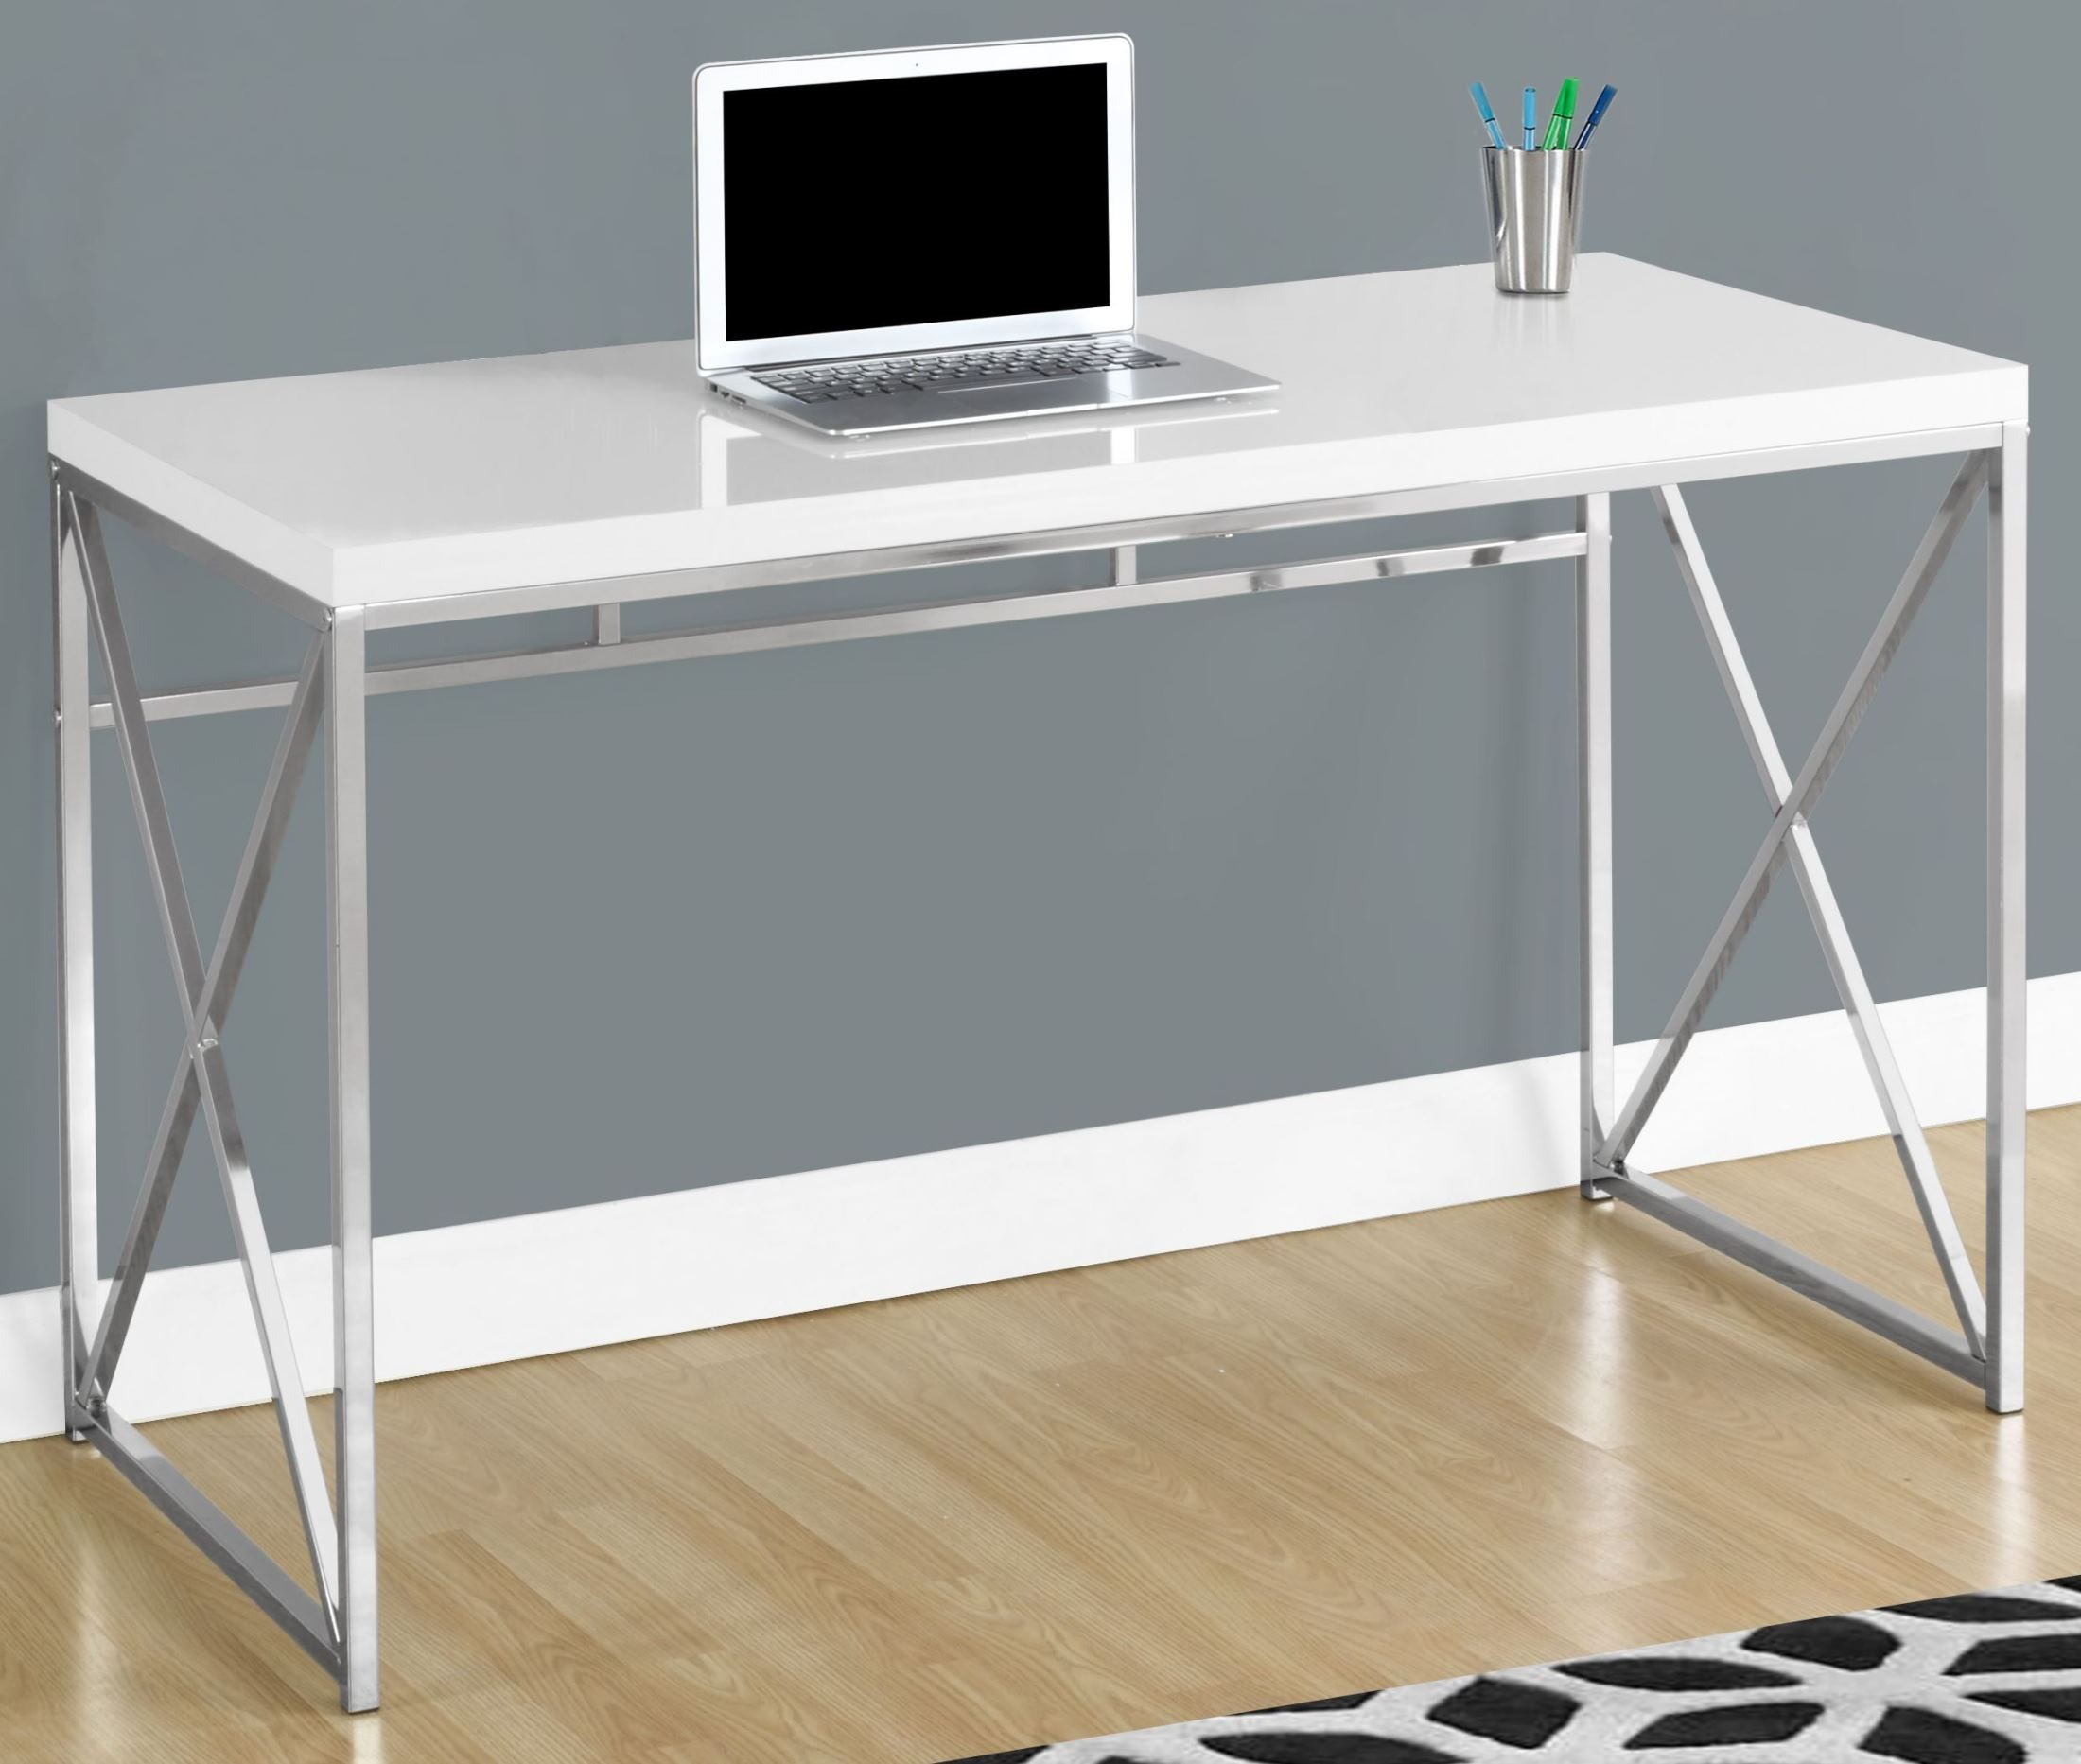 Glossy White 48 Quot Computer Desk From Monarch Coleman